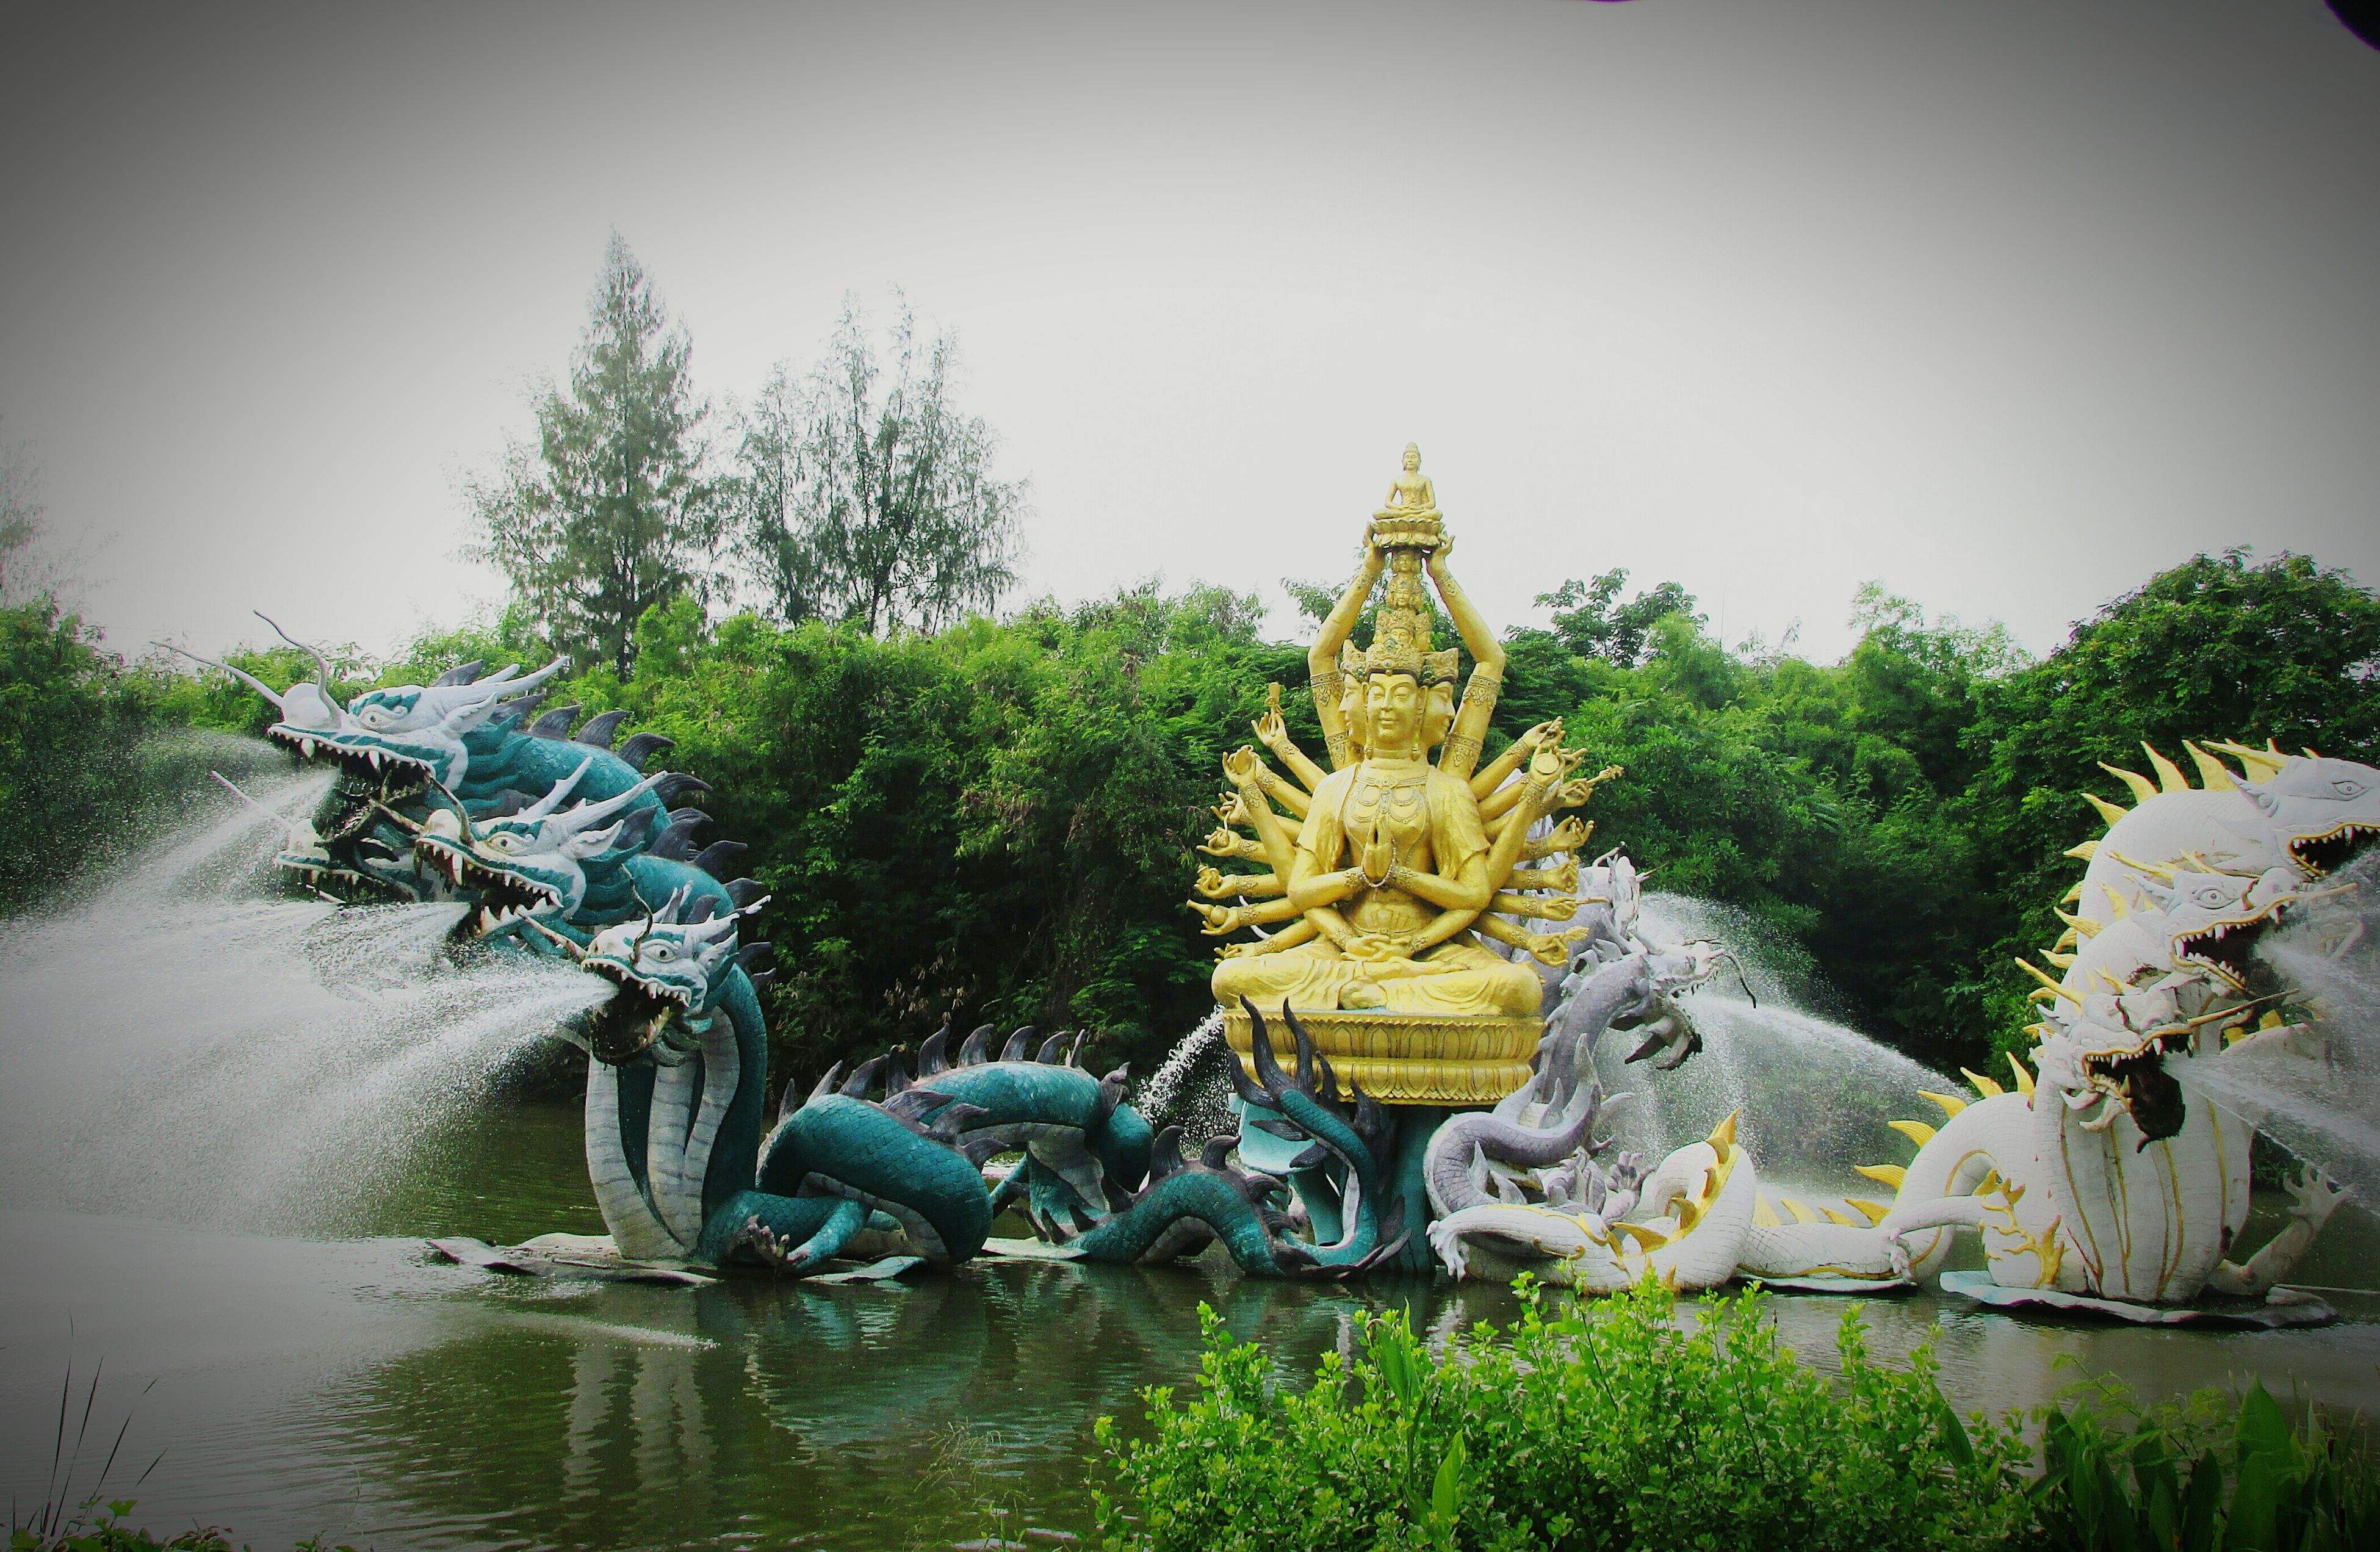 Watch This Out Water Statue Art And Craft Stone - Object Fountain Waterfront Outdoors Scenics Garden Clear Sky Vacations Relaxing In Thailand